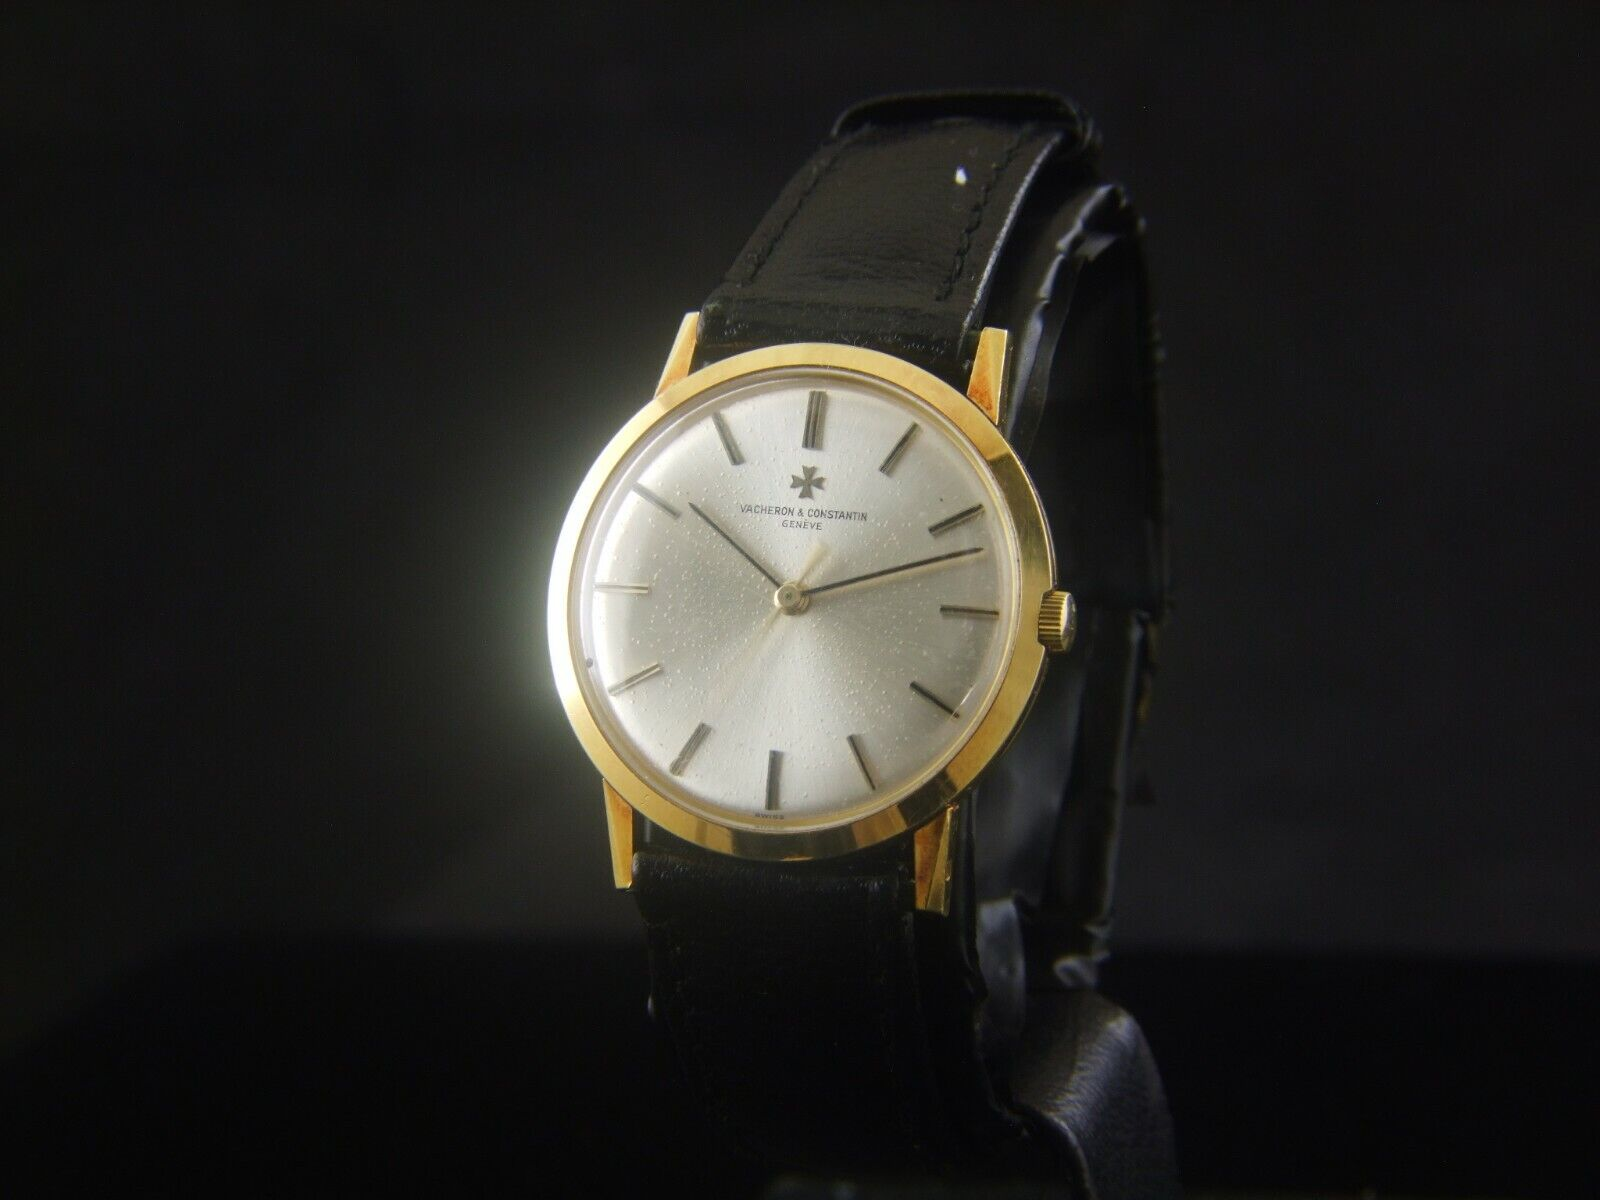 Vacheron Constantin Patrimony 18k Gold Geneve Manual Wind Cal.K1002/2 vintage - watch picture 1